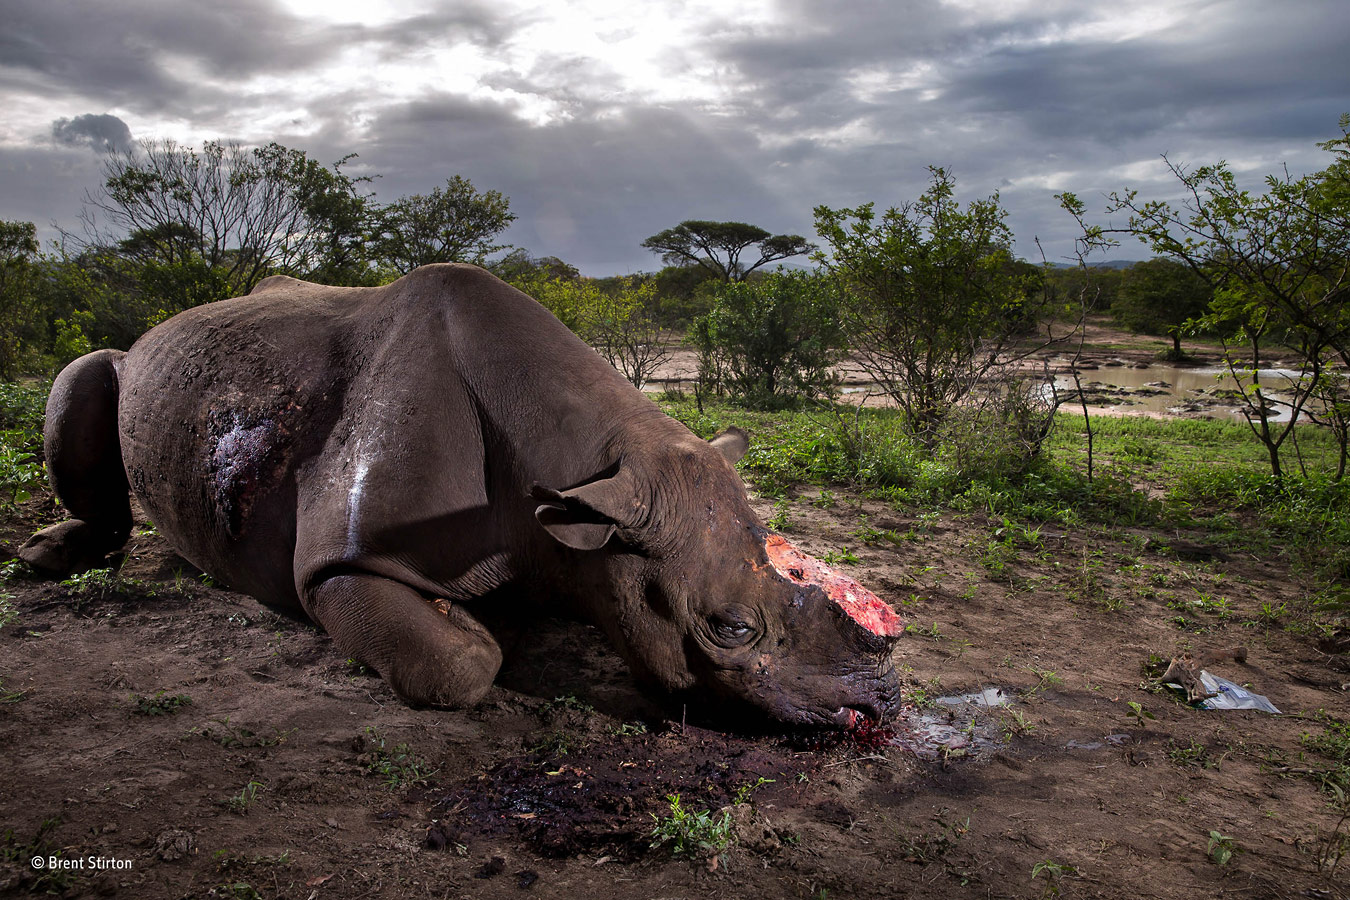 © Brent Stirton, South Africa, Wildlife Photographer of the Year 2017, Grand title winner, Wildlife Photographer of the Year